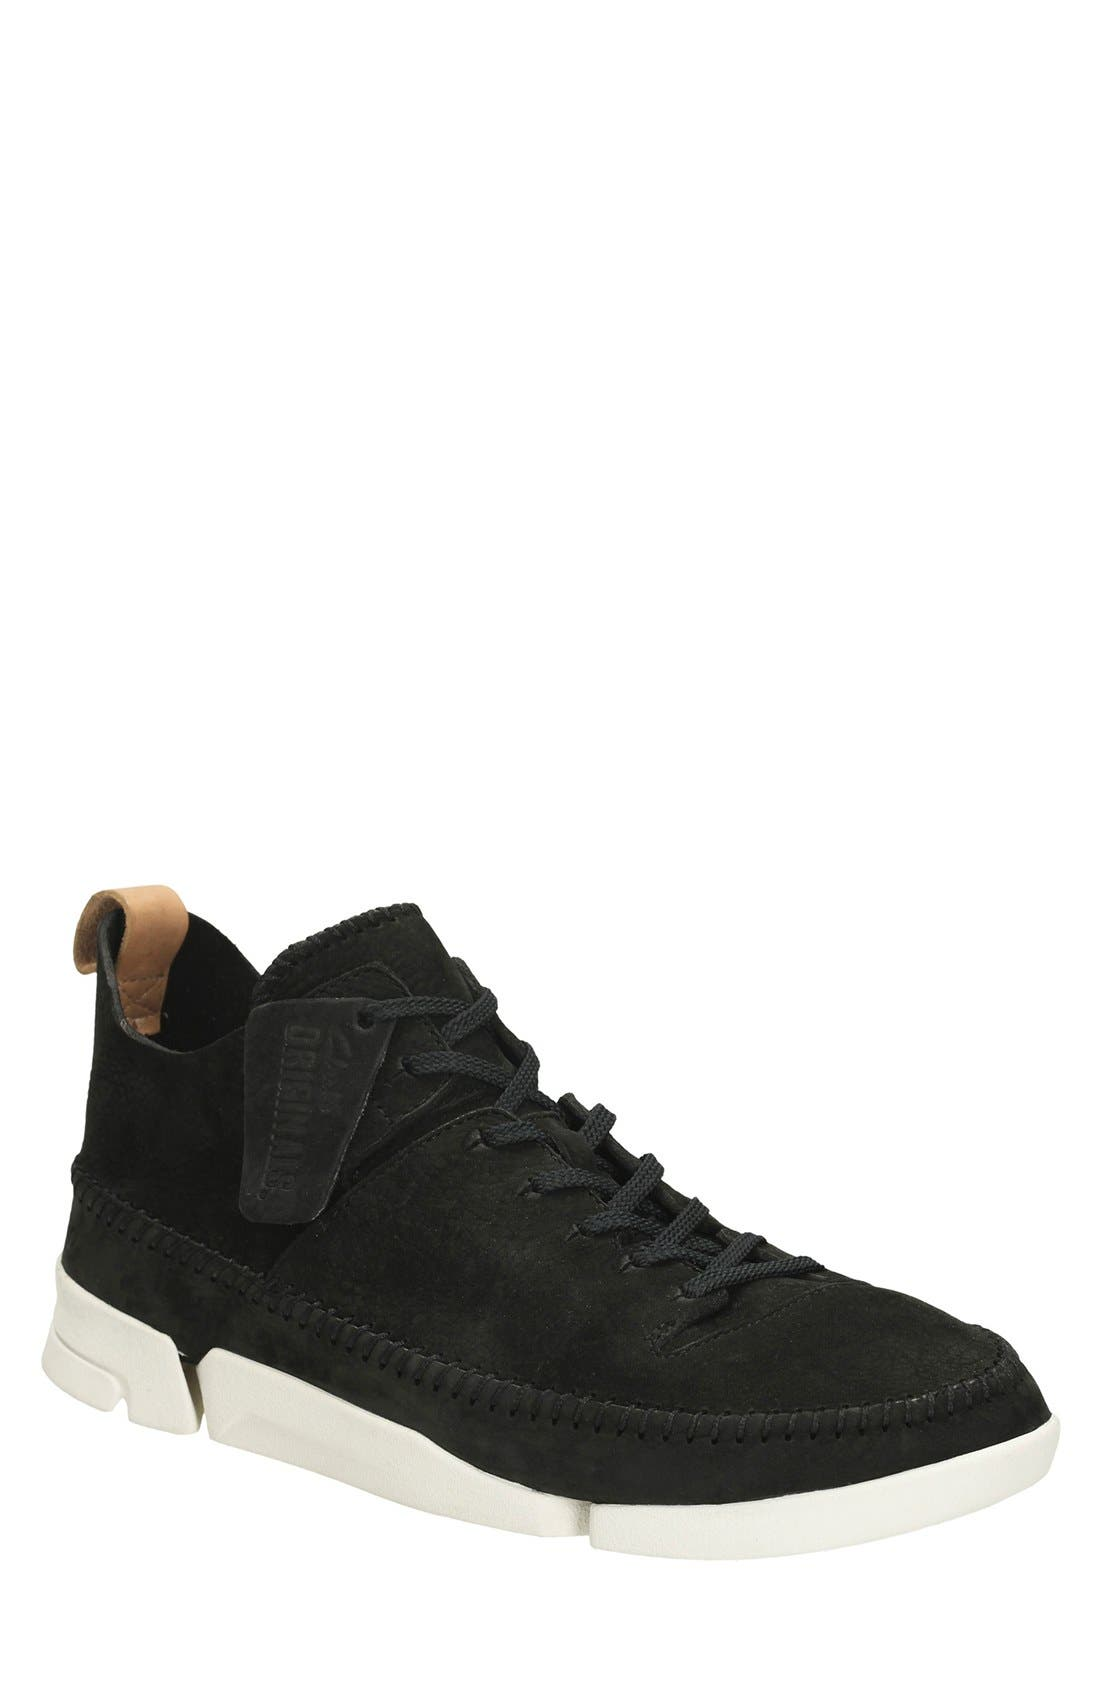 Clarks<sup>®</sup> 'Trigenic Flex' Leather Sneaker,                         Main,                         color, Black